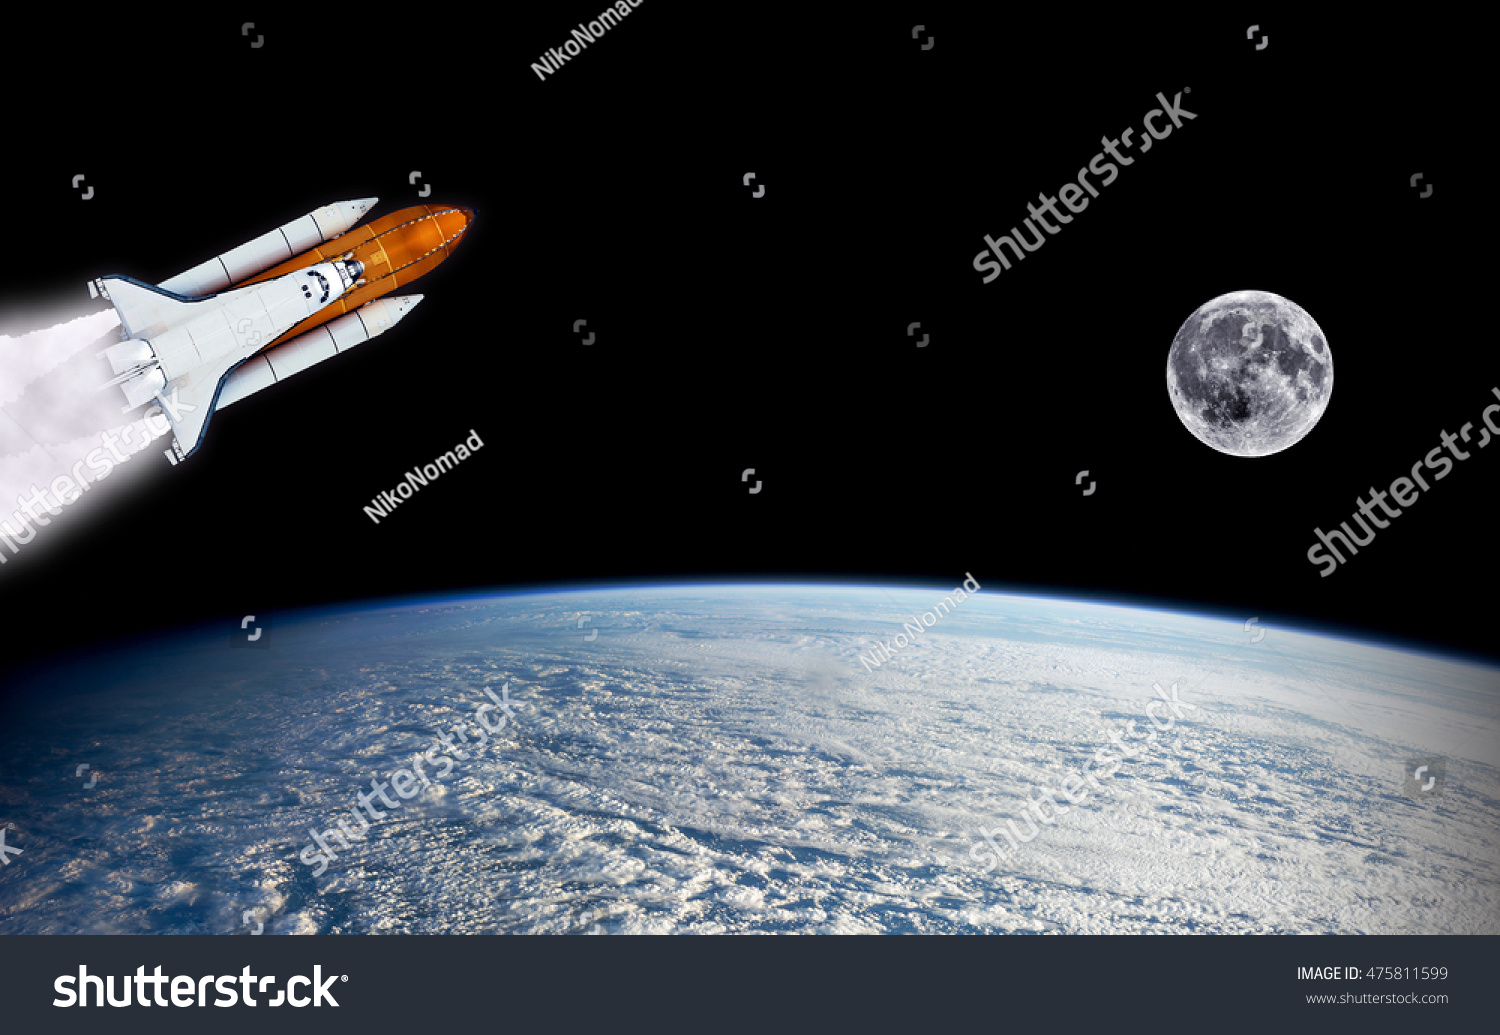 Shuttle rocket spaceship launch rocketship moon stock for Outer space elements